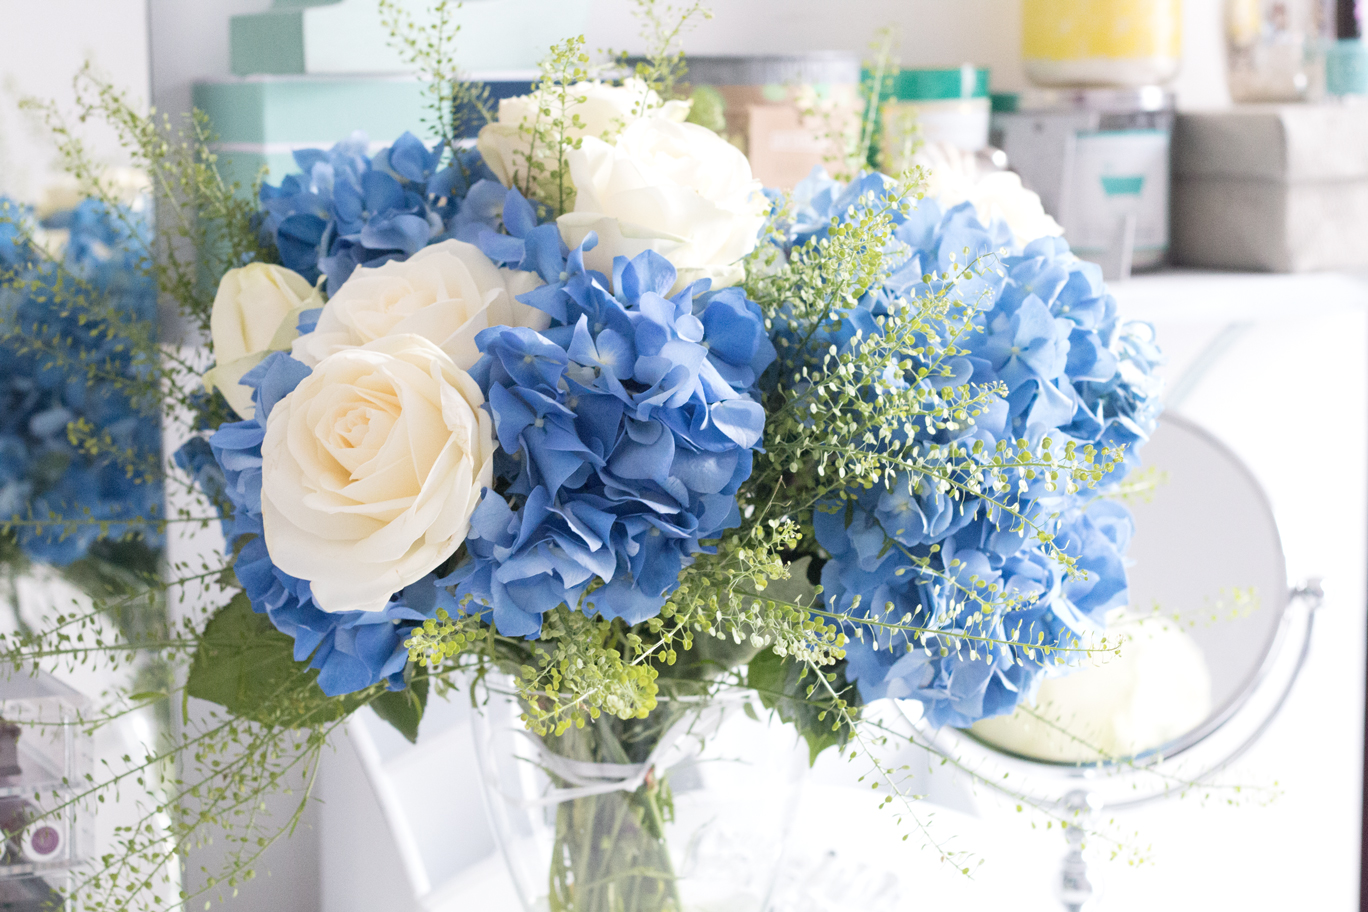 Friday flowers britton loves blossoming gifts are a relatively new company in the uk specialising in week long flower deliveries of any bouquet you choose and their current summer izmirmasajfo Images